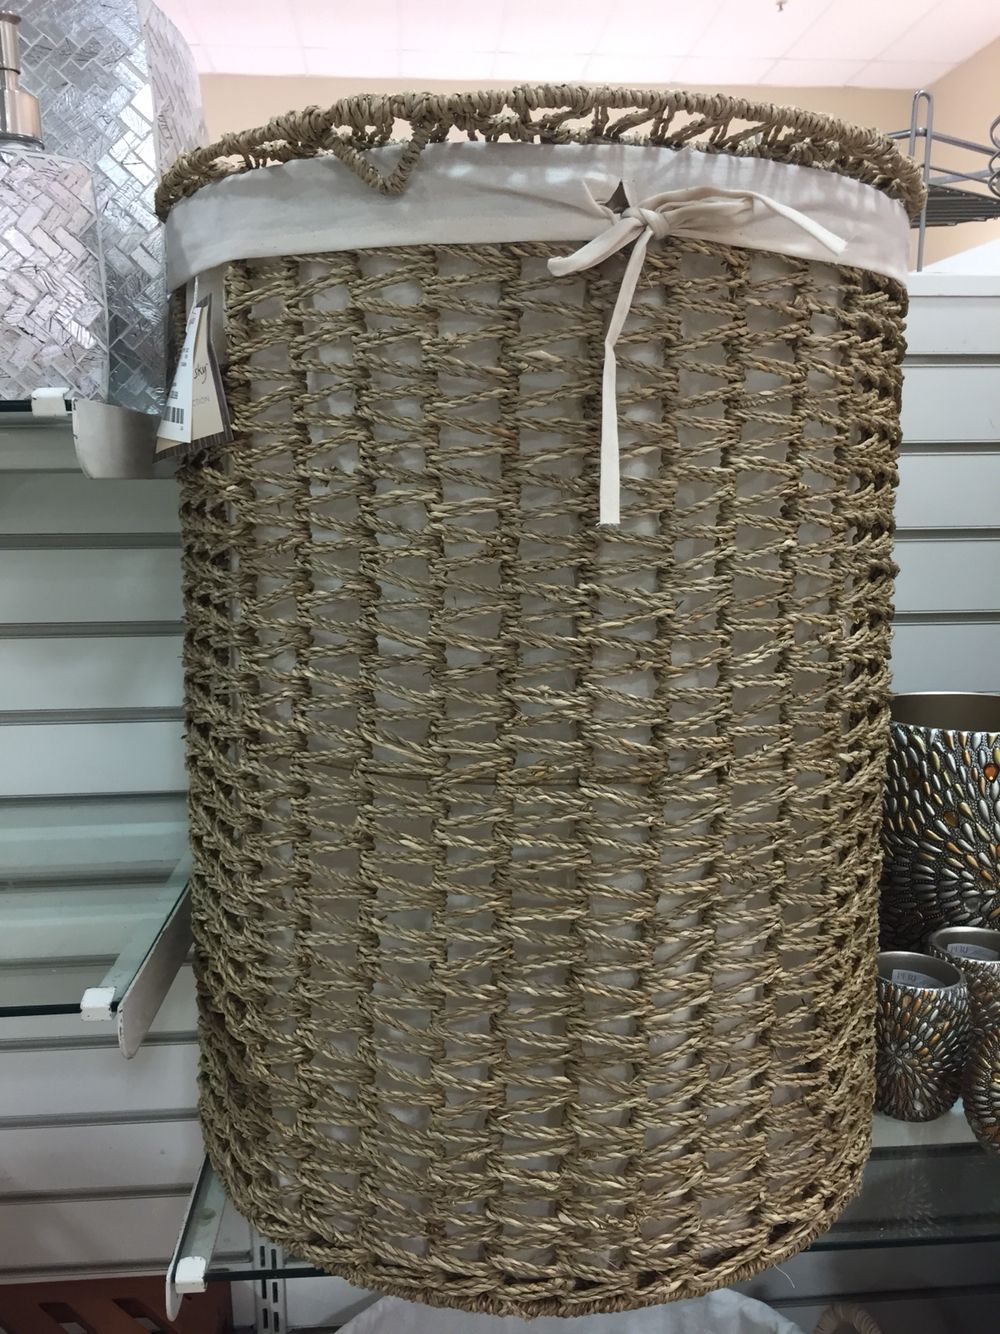 Laundry basket from Homegoods